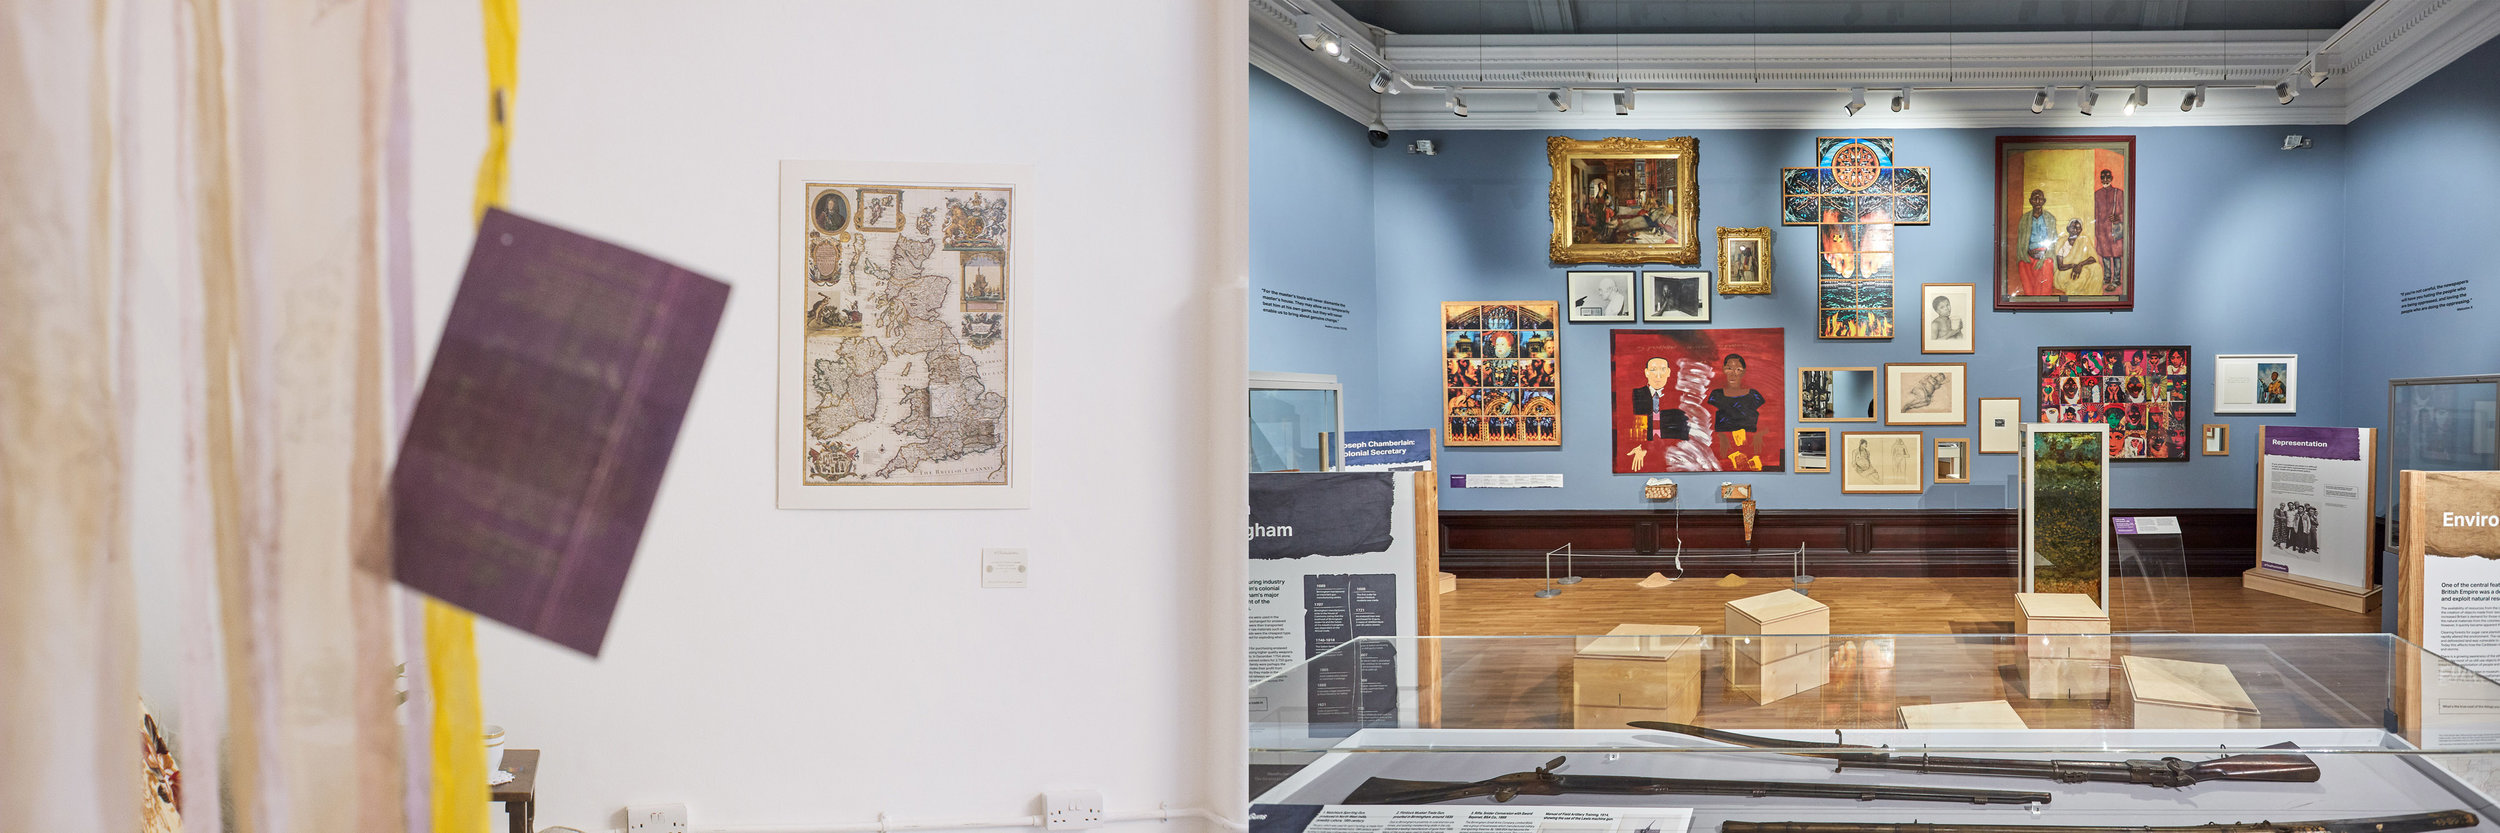 Left, Shaheen's pieces at BOBBA Exhibition.Photo credit: Joe Fetta  Right, The Past Is Now exhibition at Birmingham Museum Art Gallery